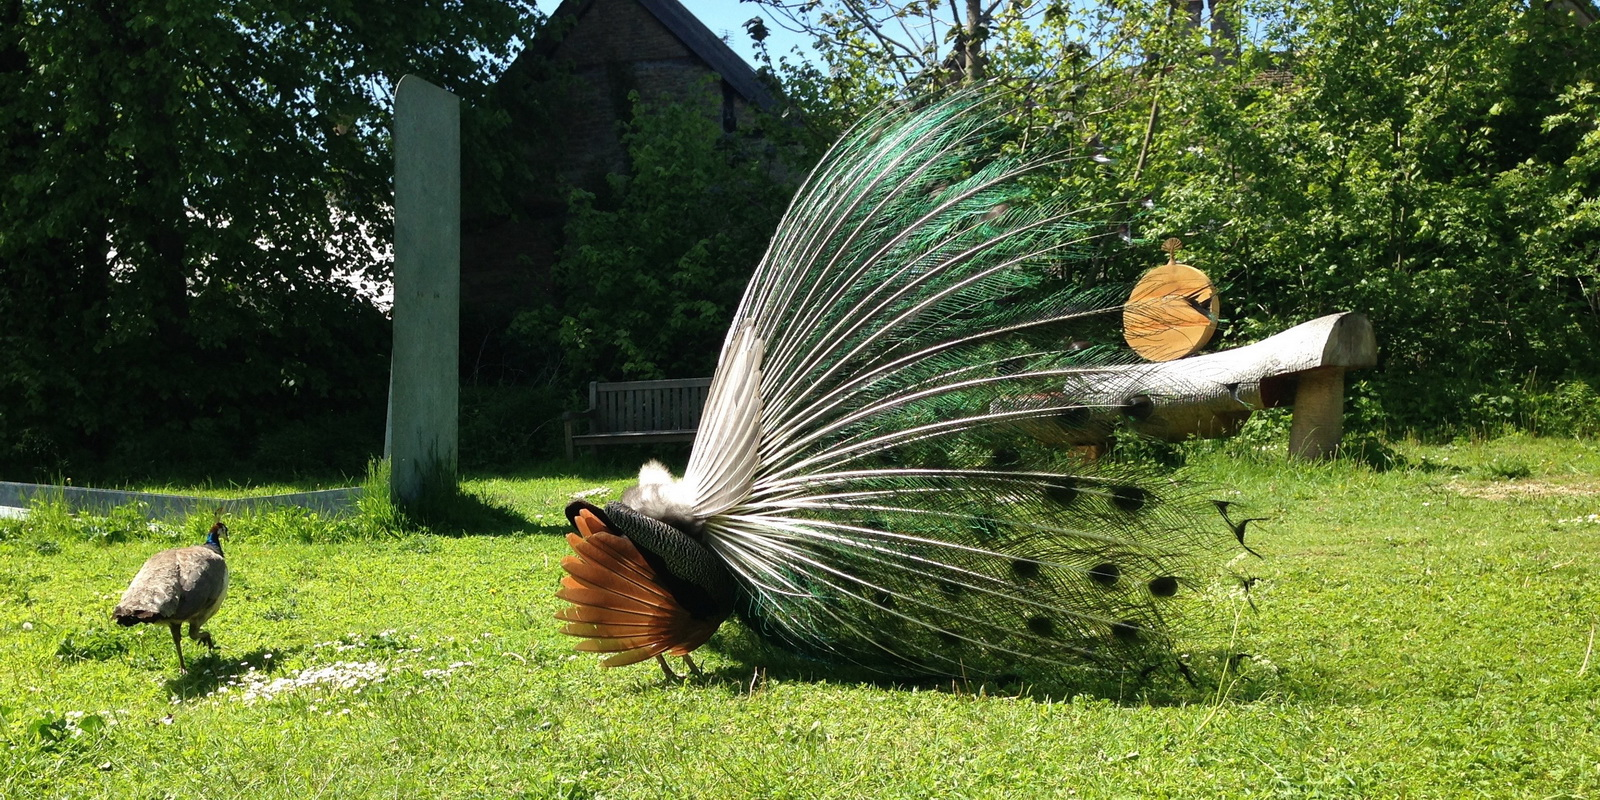 Pea hen and peacock bum by Tanvir Bush